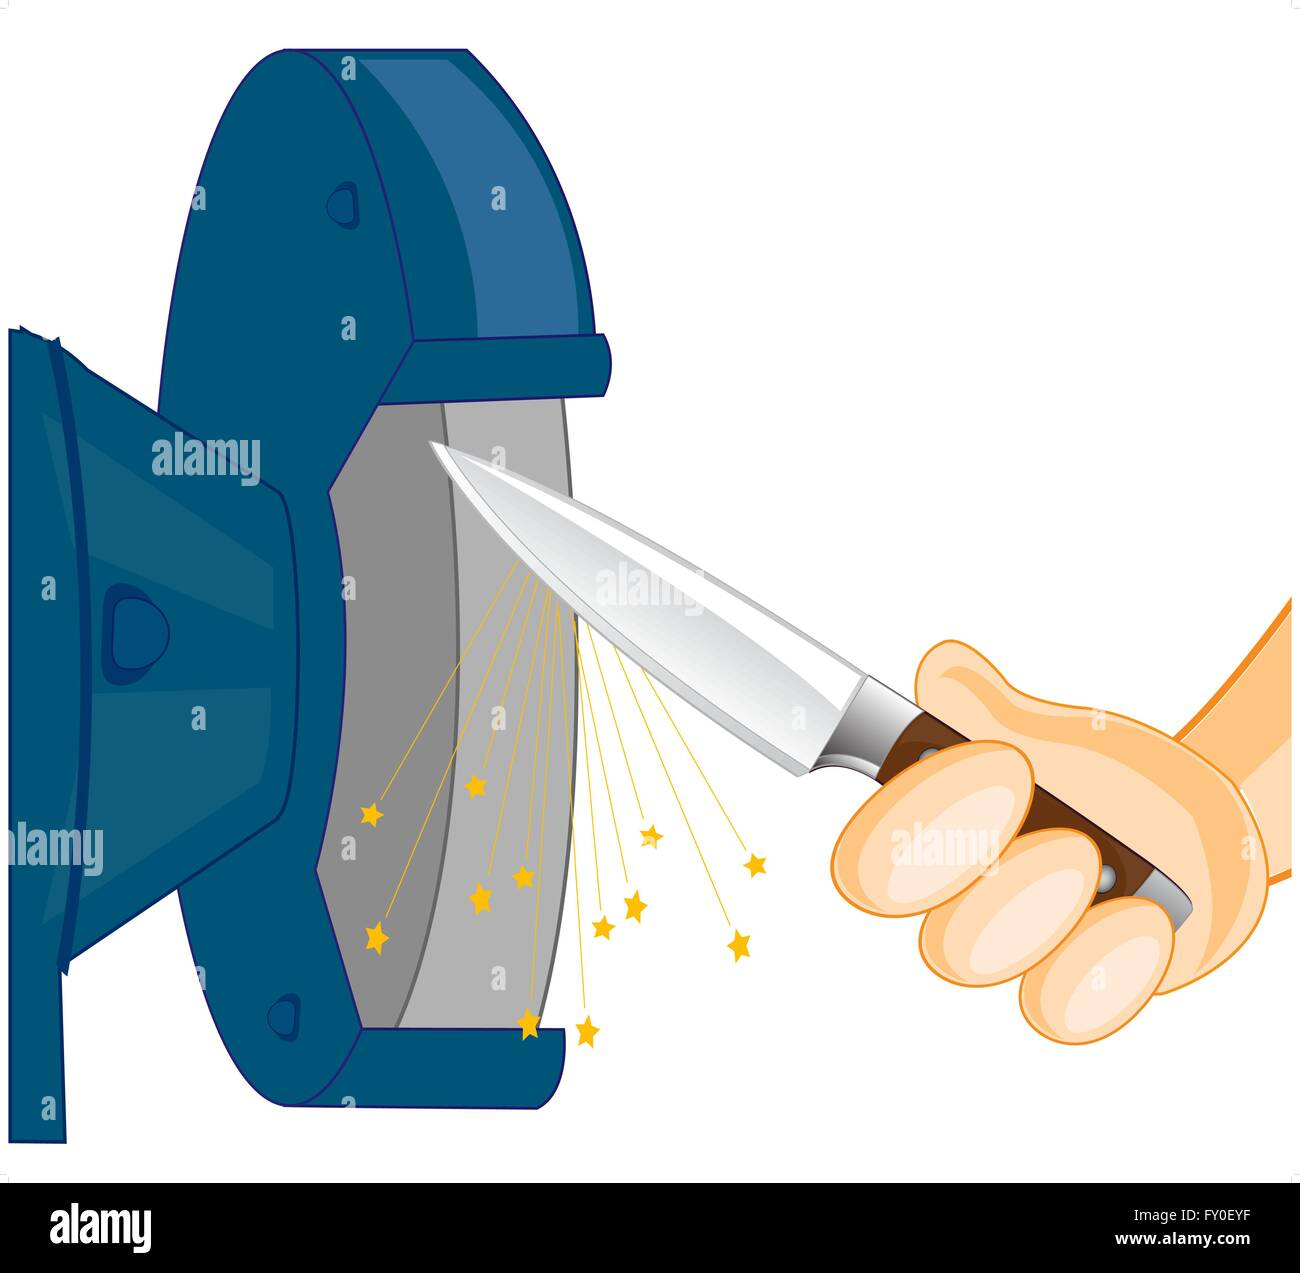 Sharpening the knife on tool - Stock Vector